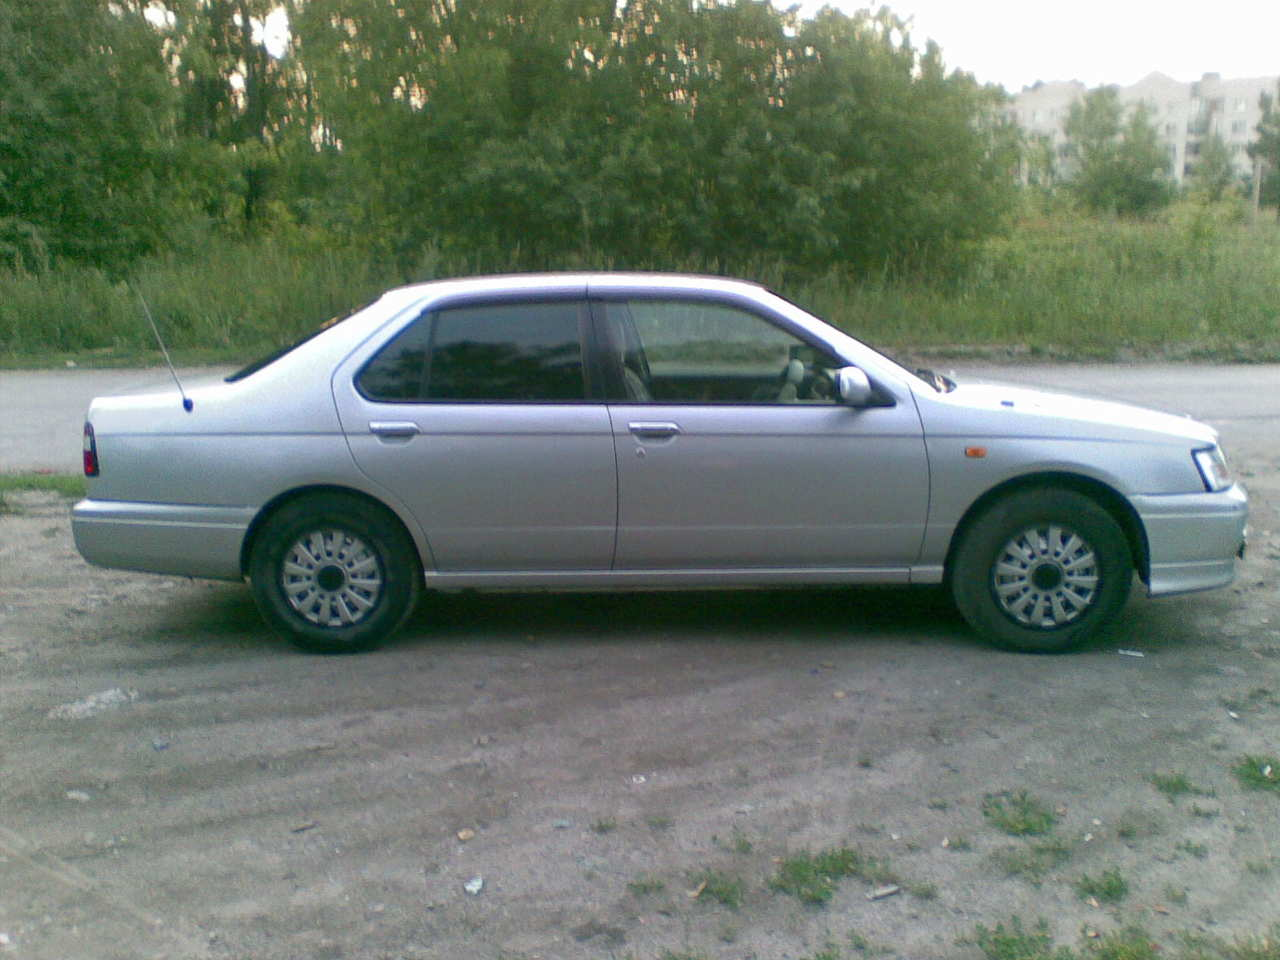 2000 Nissan Bluebird Pictures 18l Gasoline Ff Automatic For Sale Alternator Wiring Schematics Photo 2 Enlarge 1280x960